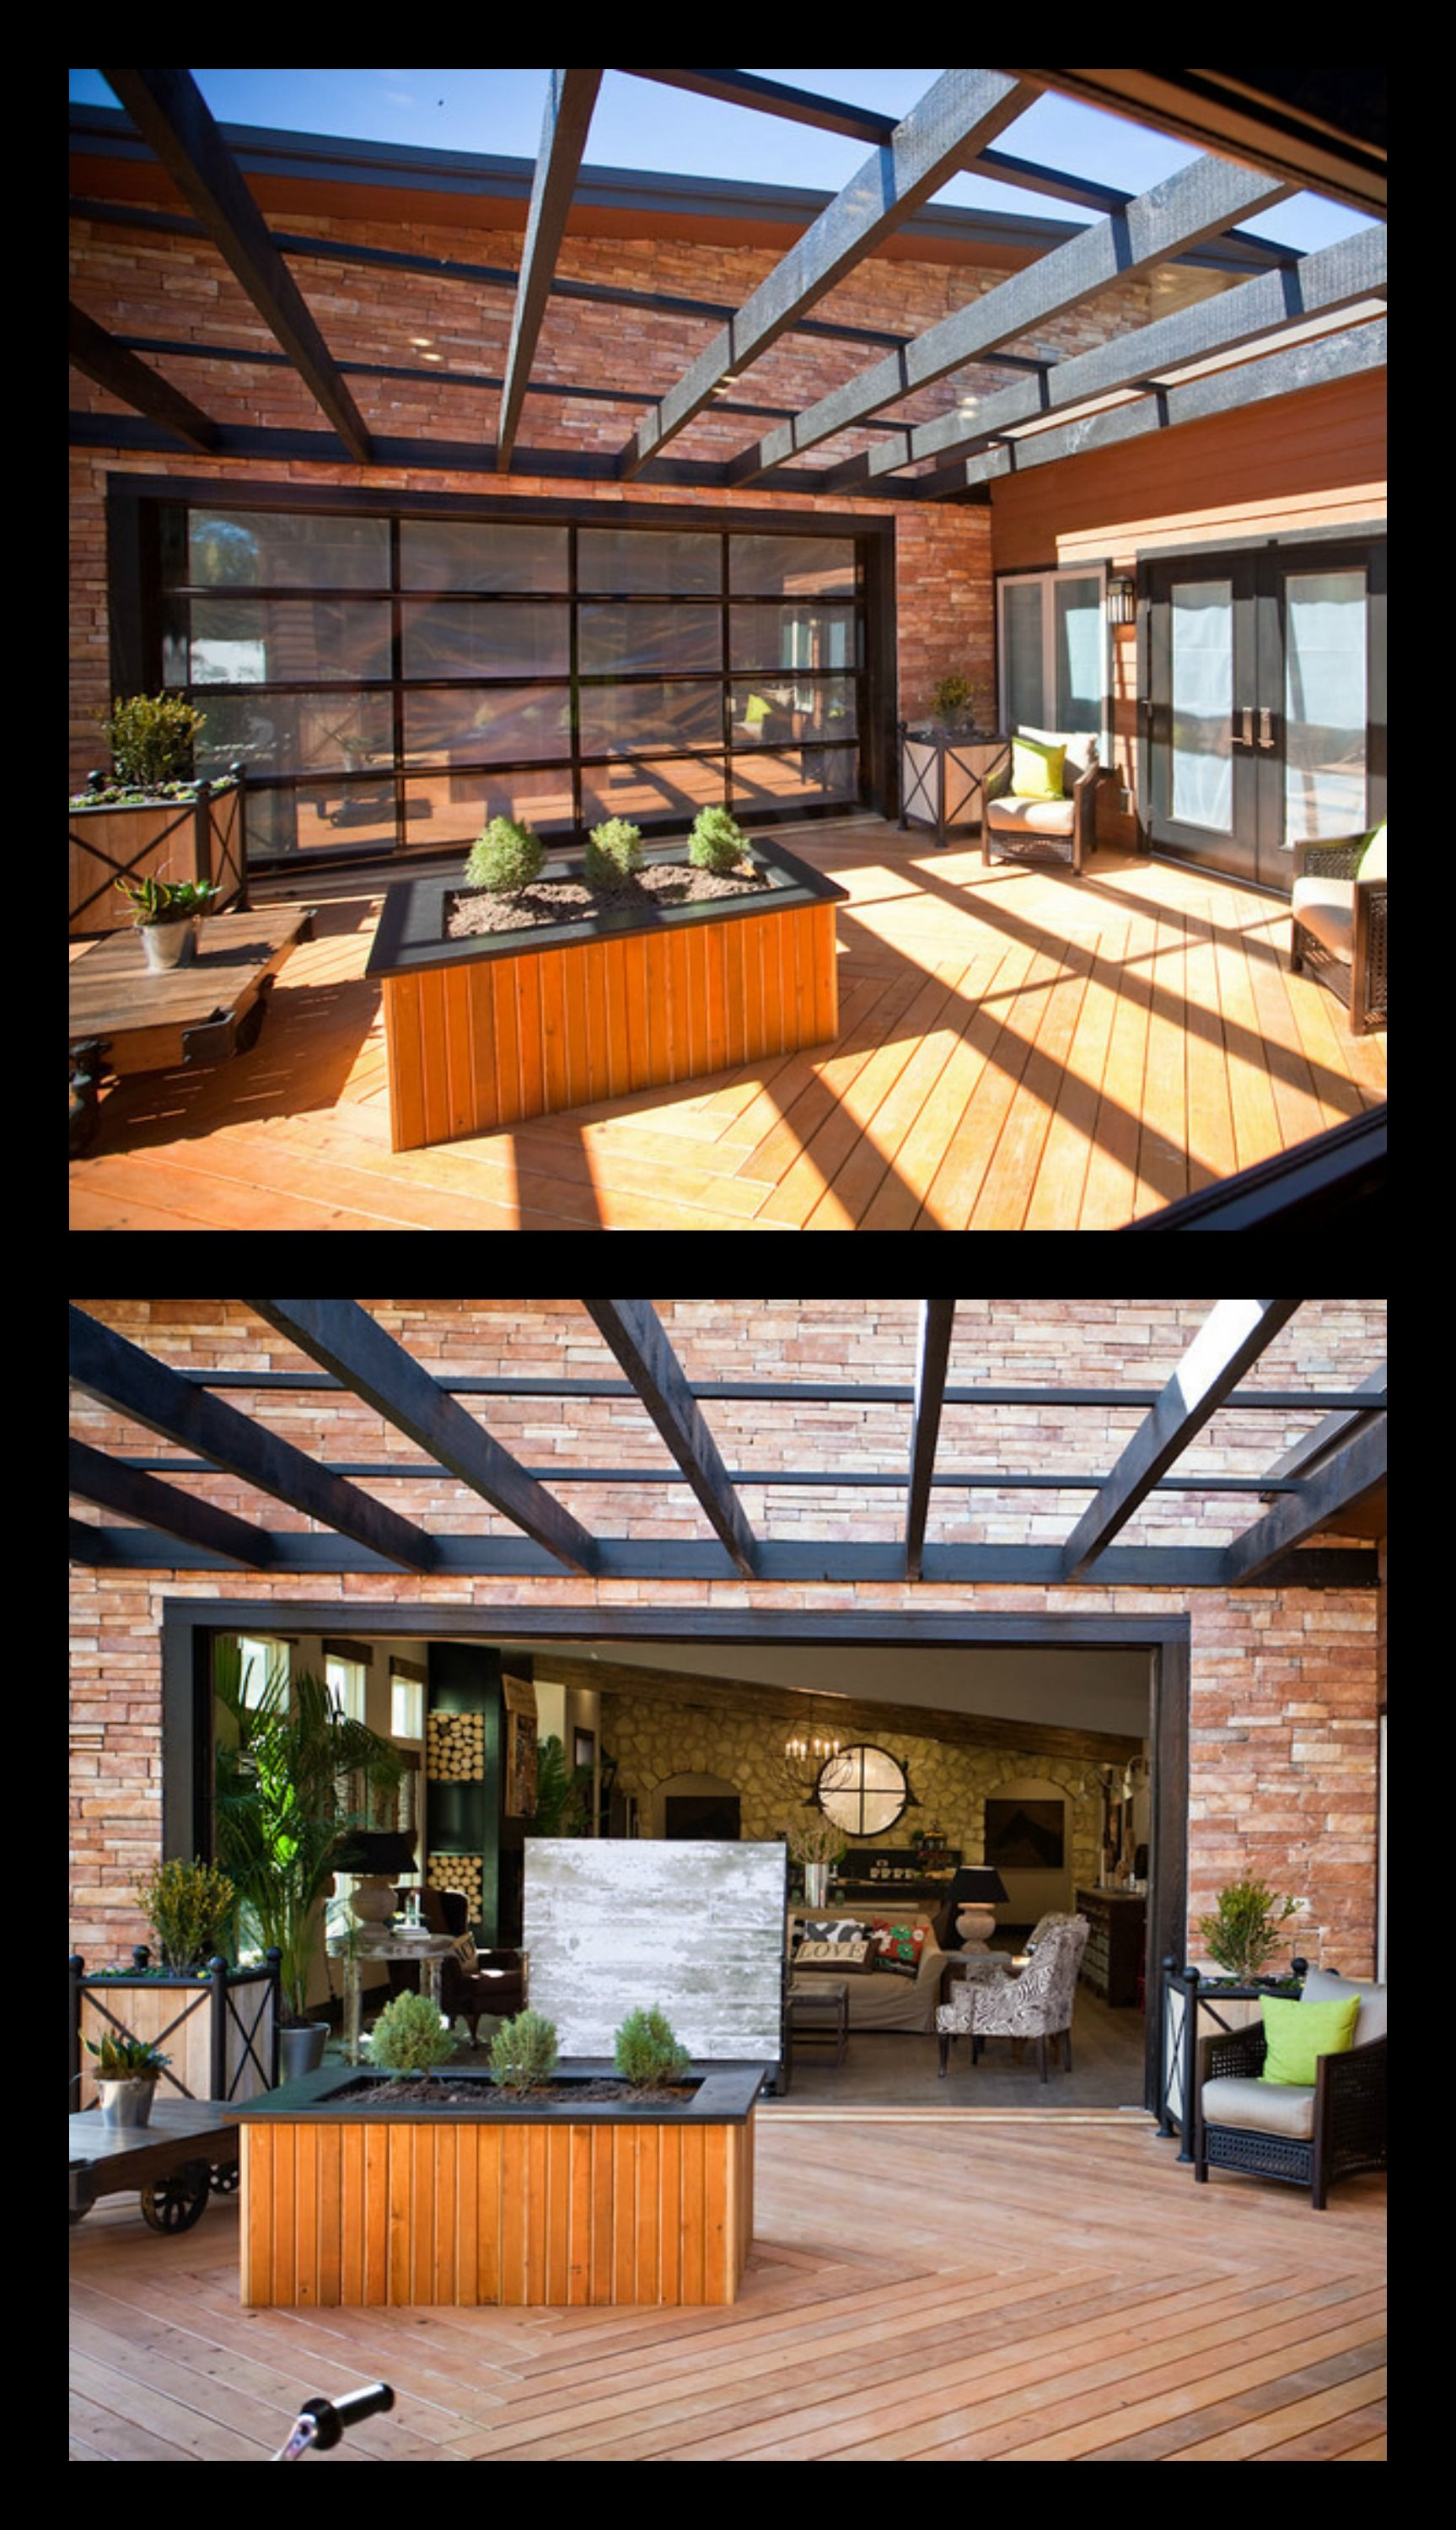 Use A Glass Garage Door To Open Up Your Family Room To An Outdoor Entertaining Area Closed The Door Is A Wall Glass Garage Door Garage Door Decor Garage Doors